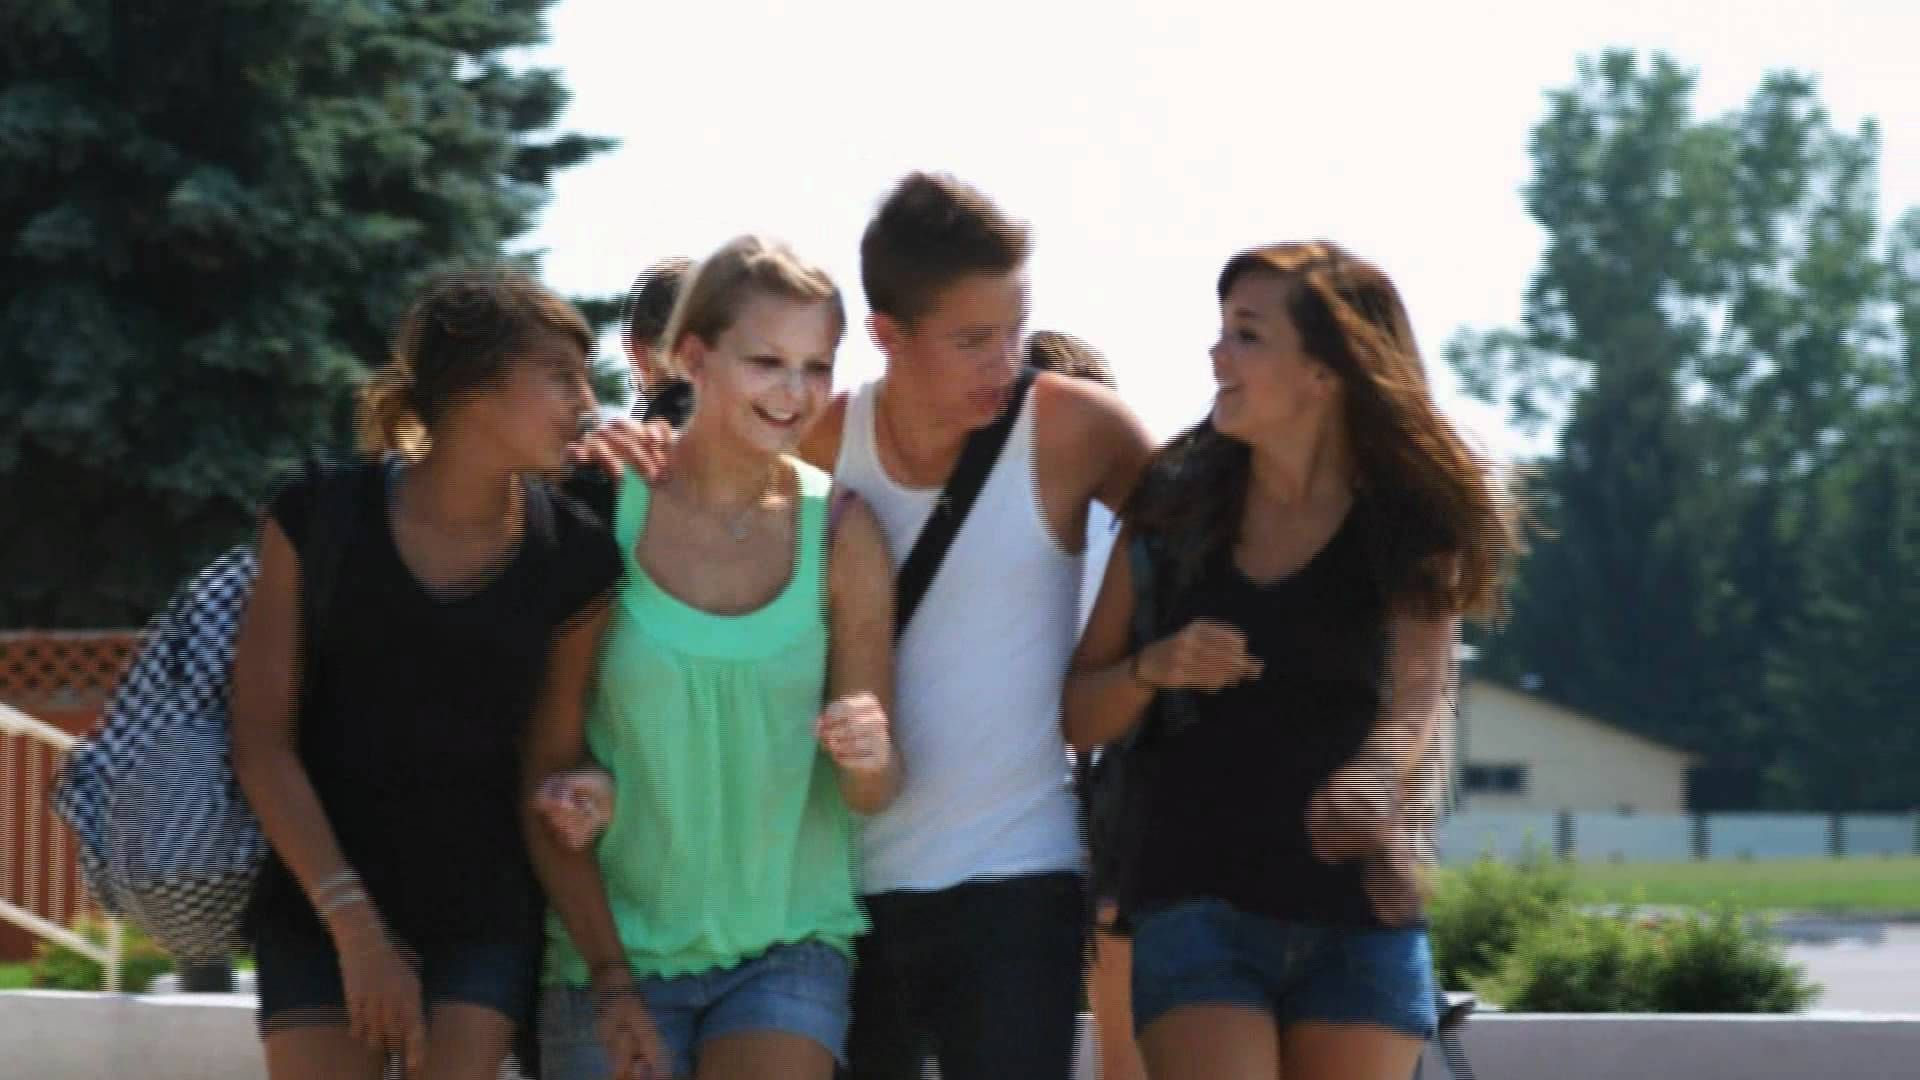 Healthy Relationships (Shelter from the Storm - Youth Advisory Council) ...